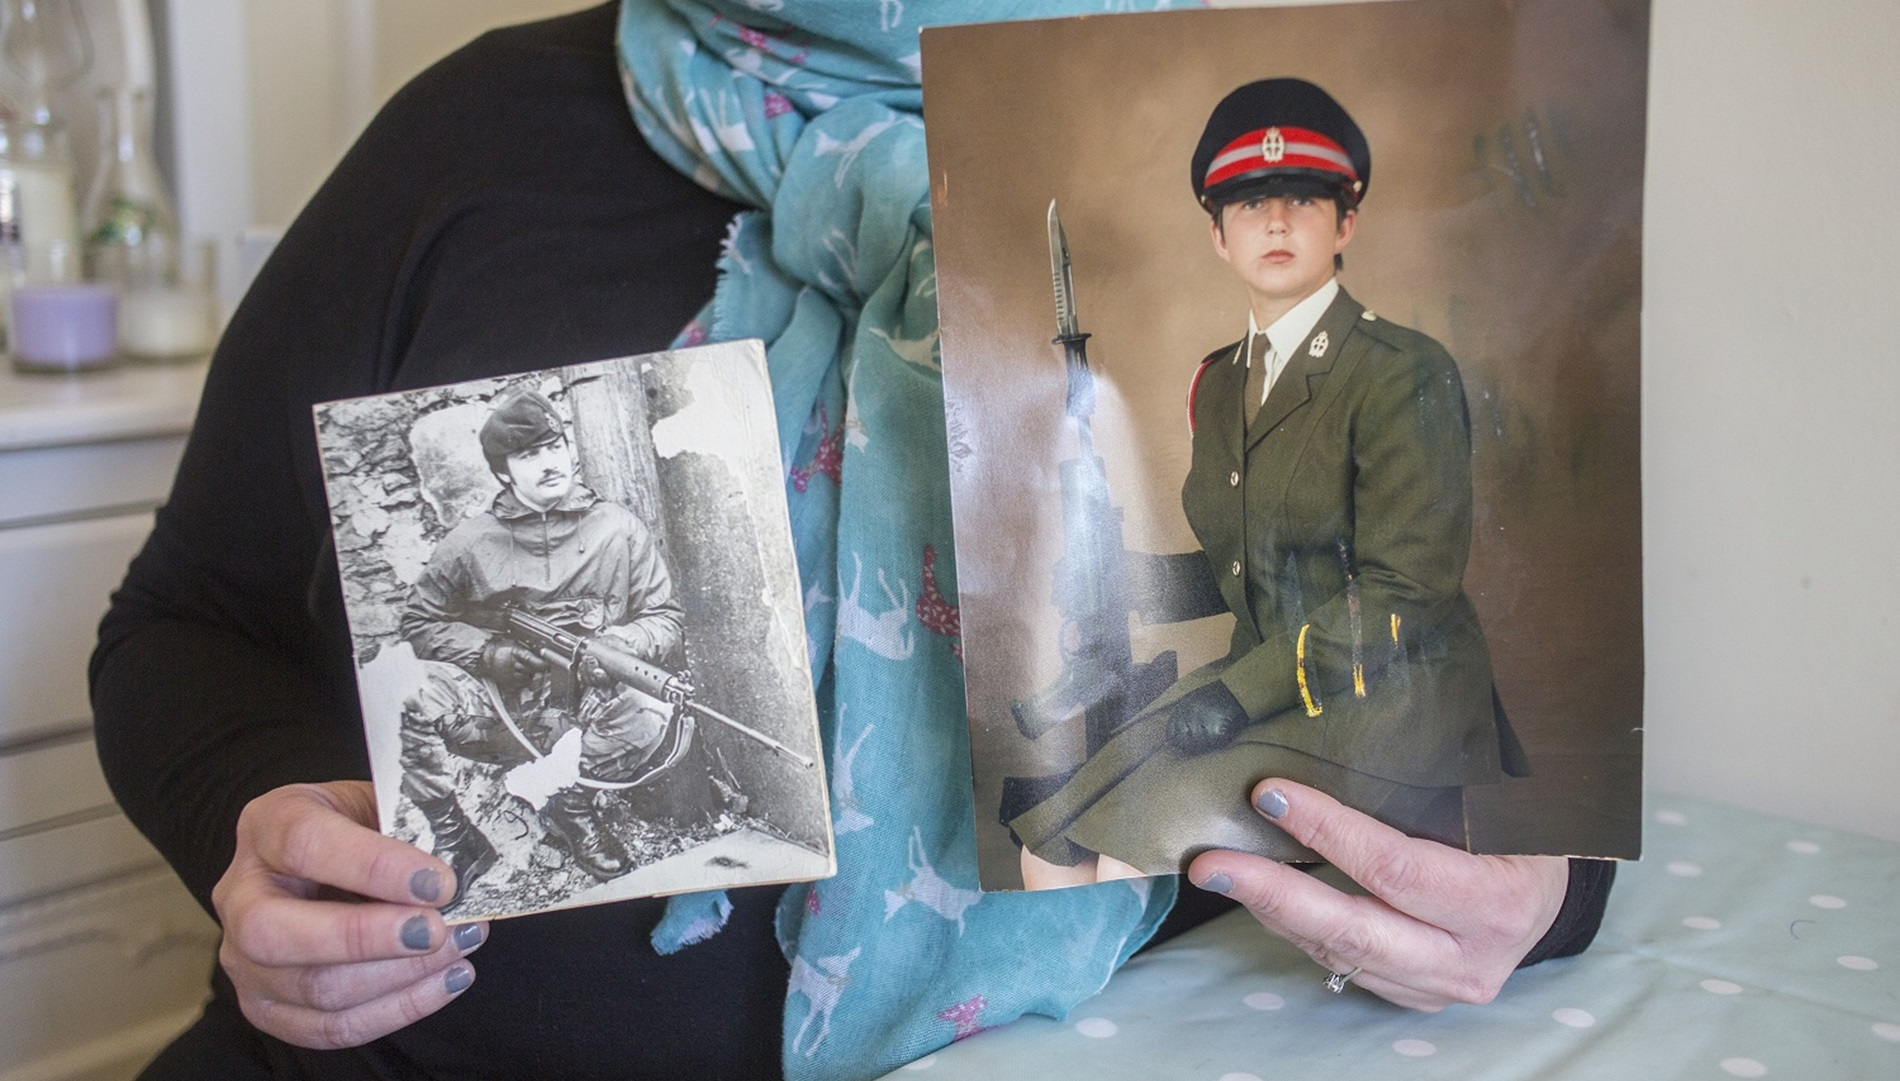 Stacey holding photos of her time in the Army